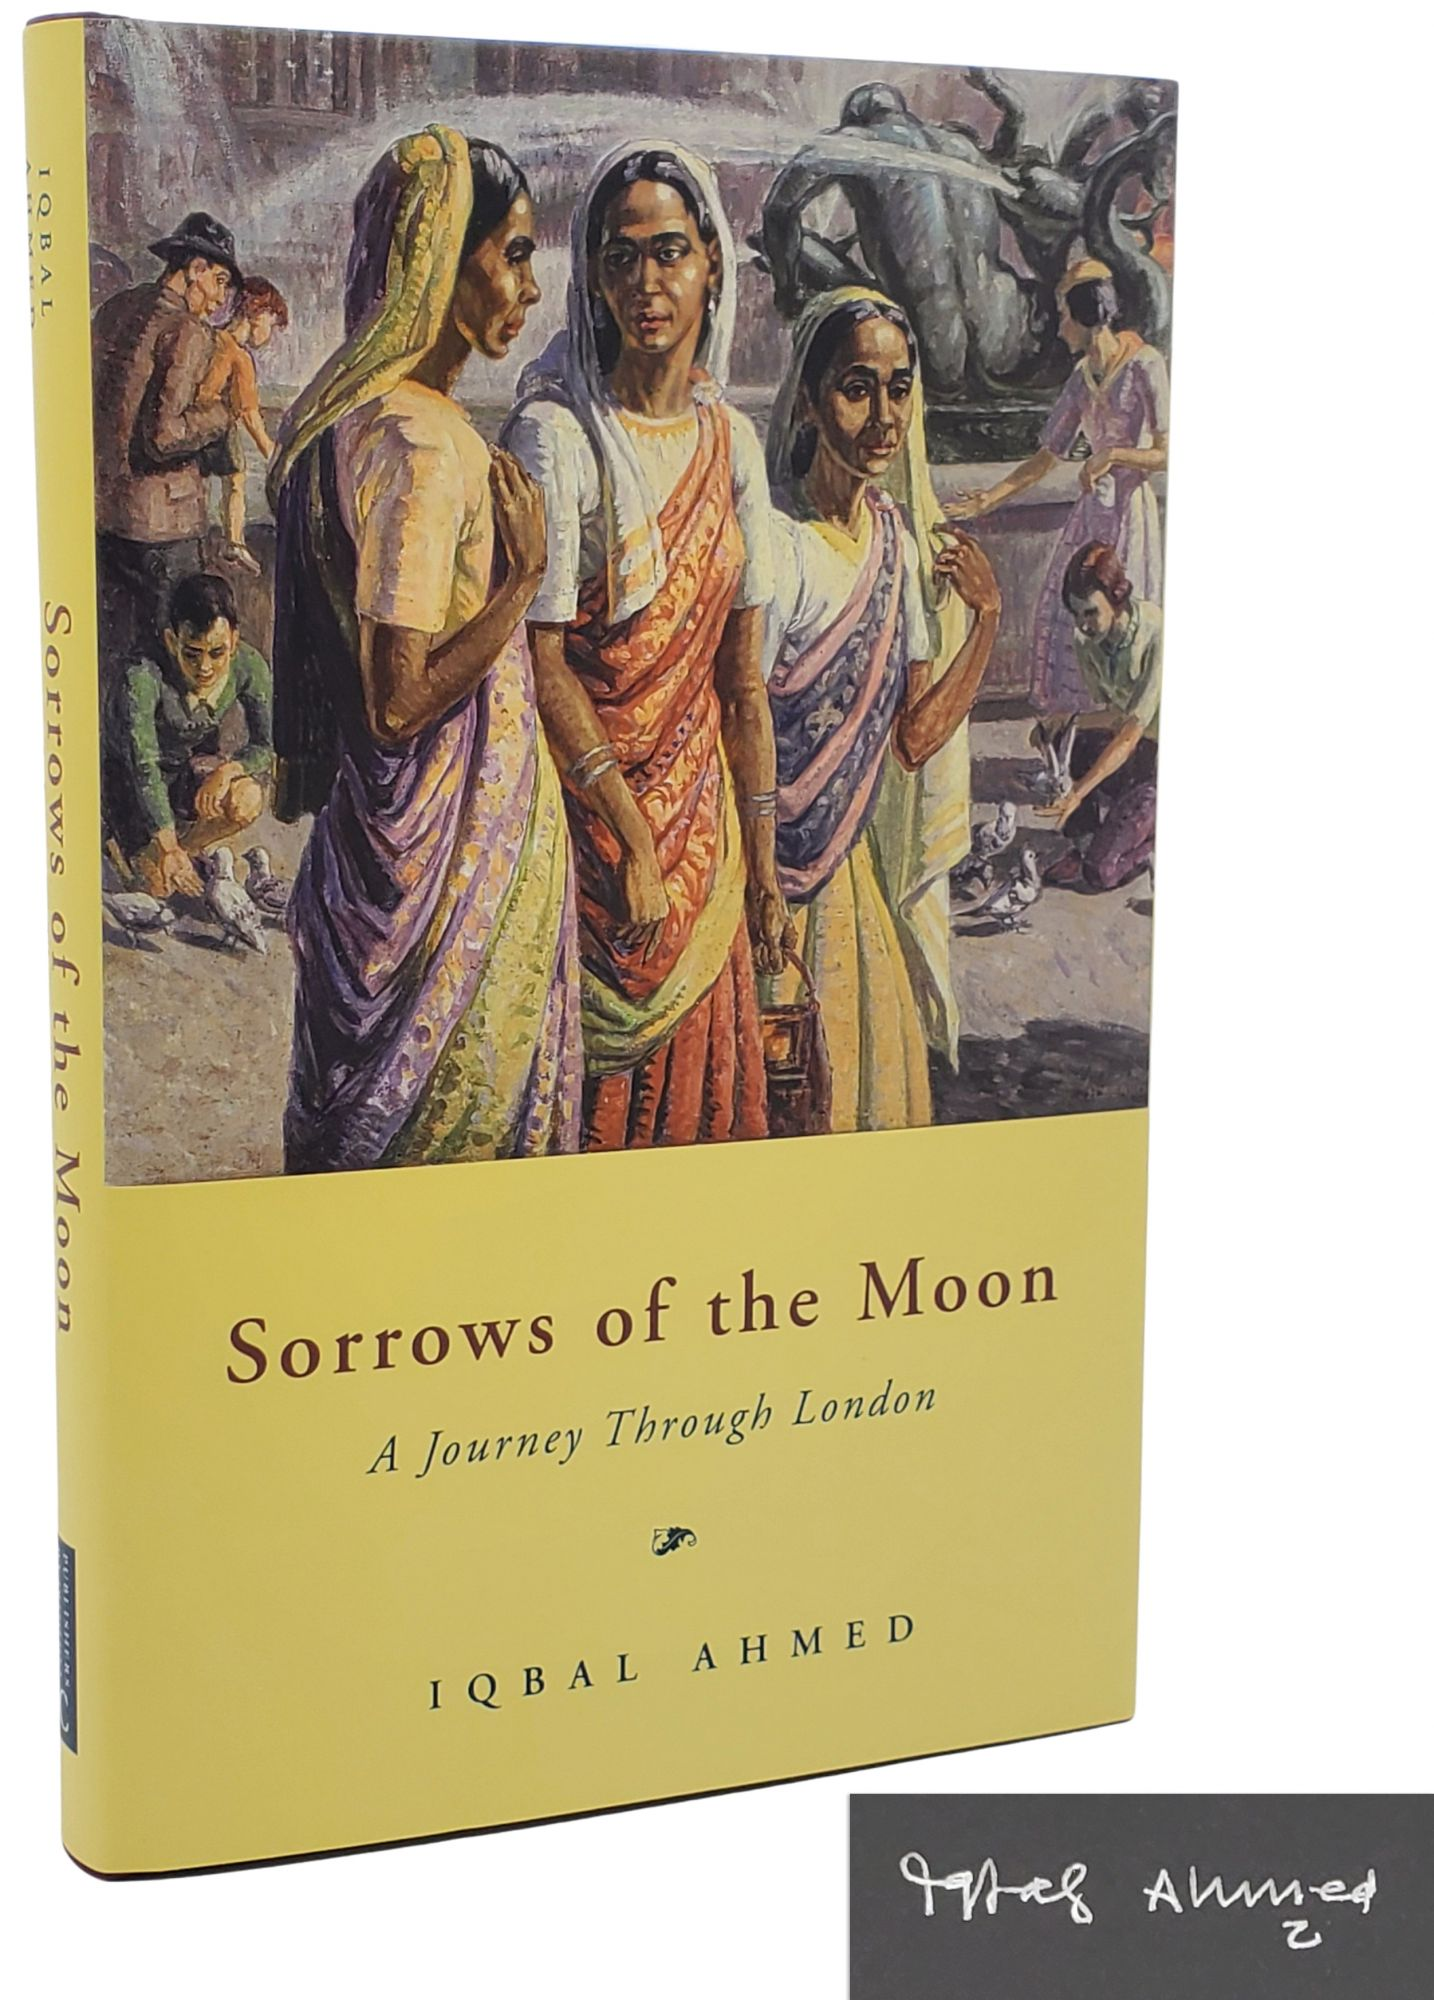 SORROWS OF THE MOON. A Journey Through London. Iqbal Ahmed.